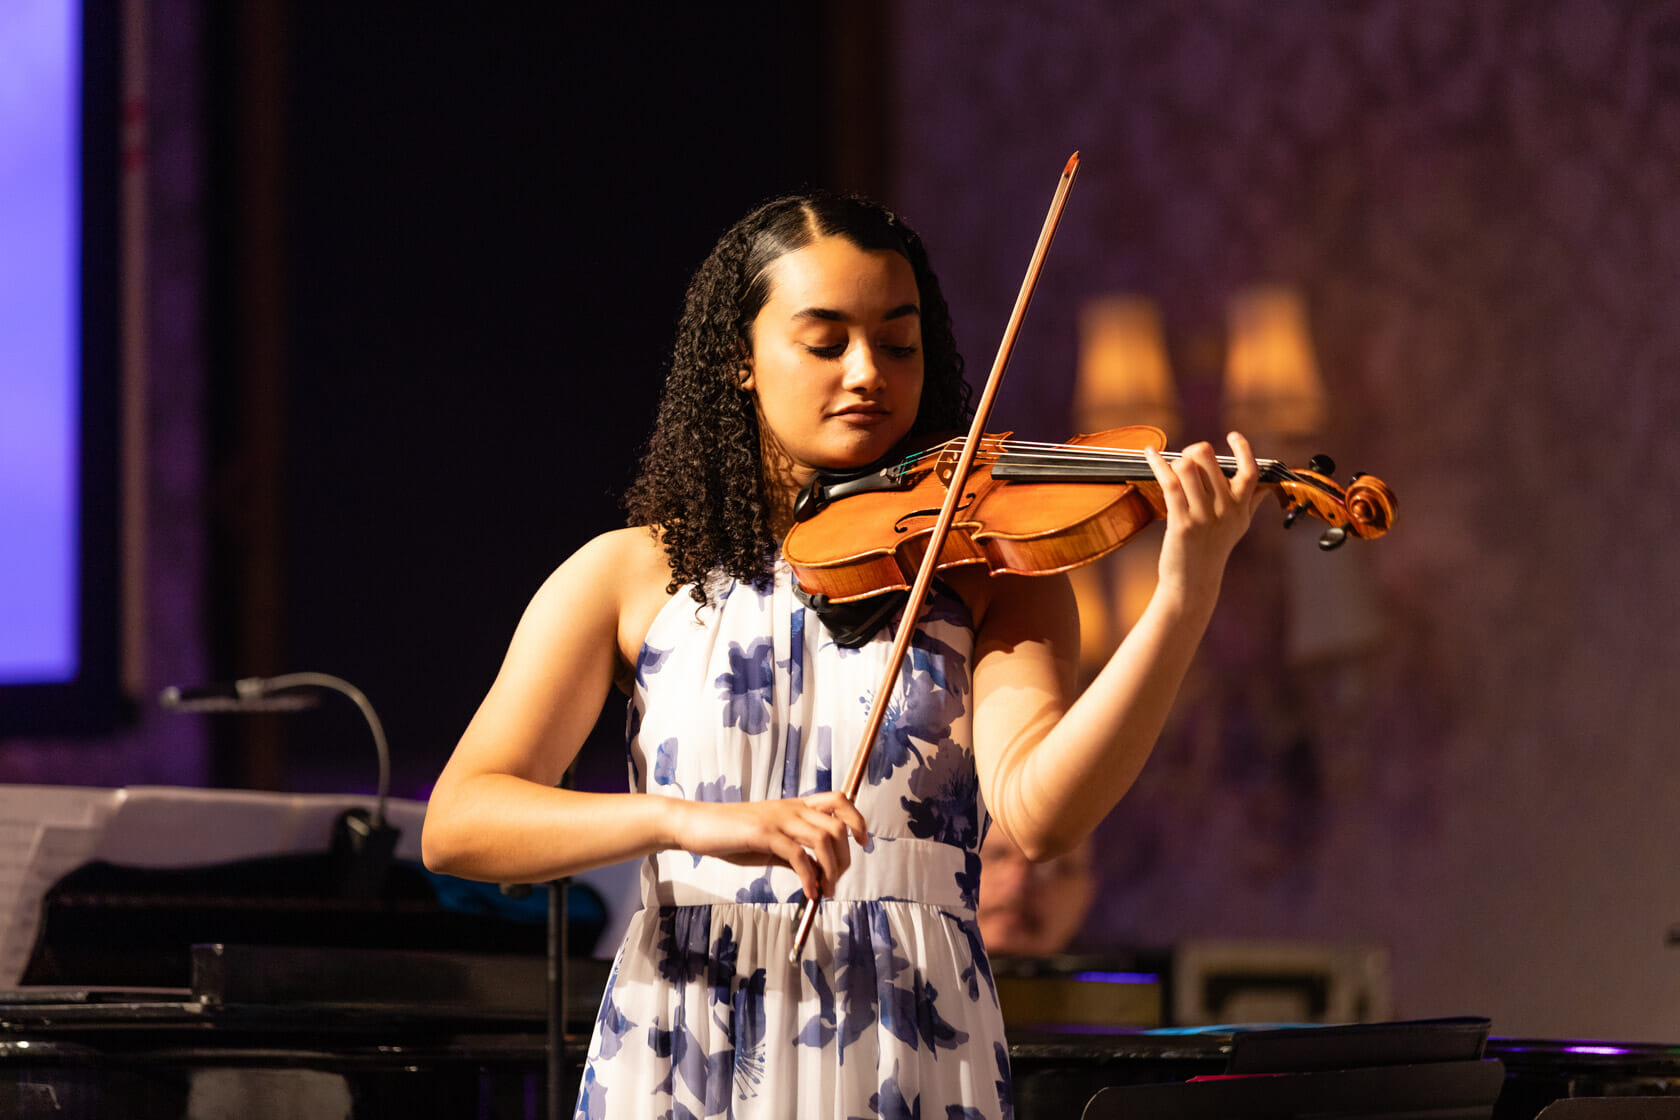 """You are currently viewing Nominations are now open for the Lisa Bruna B-Major Award as Palm Beach Symphony will again be """"instrumental"""" in aiding high school seniors' future musical education and careers"""